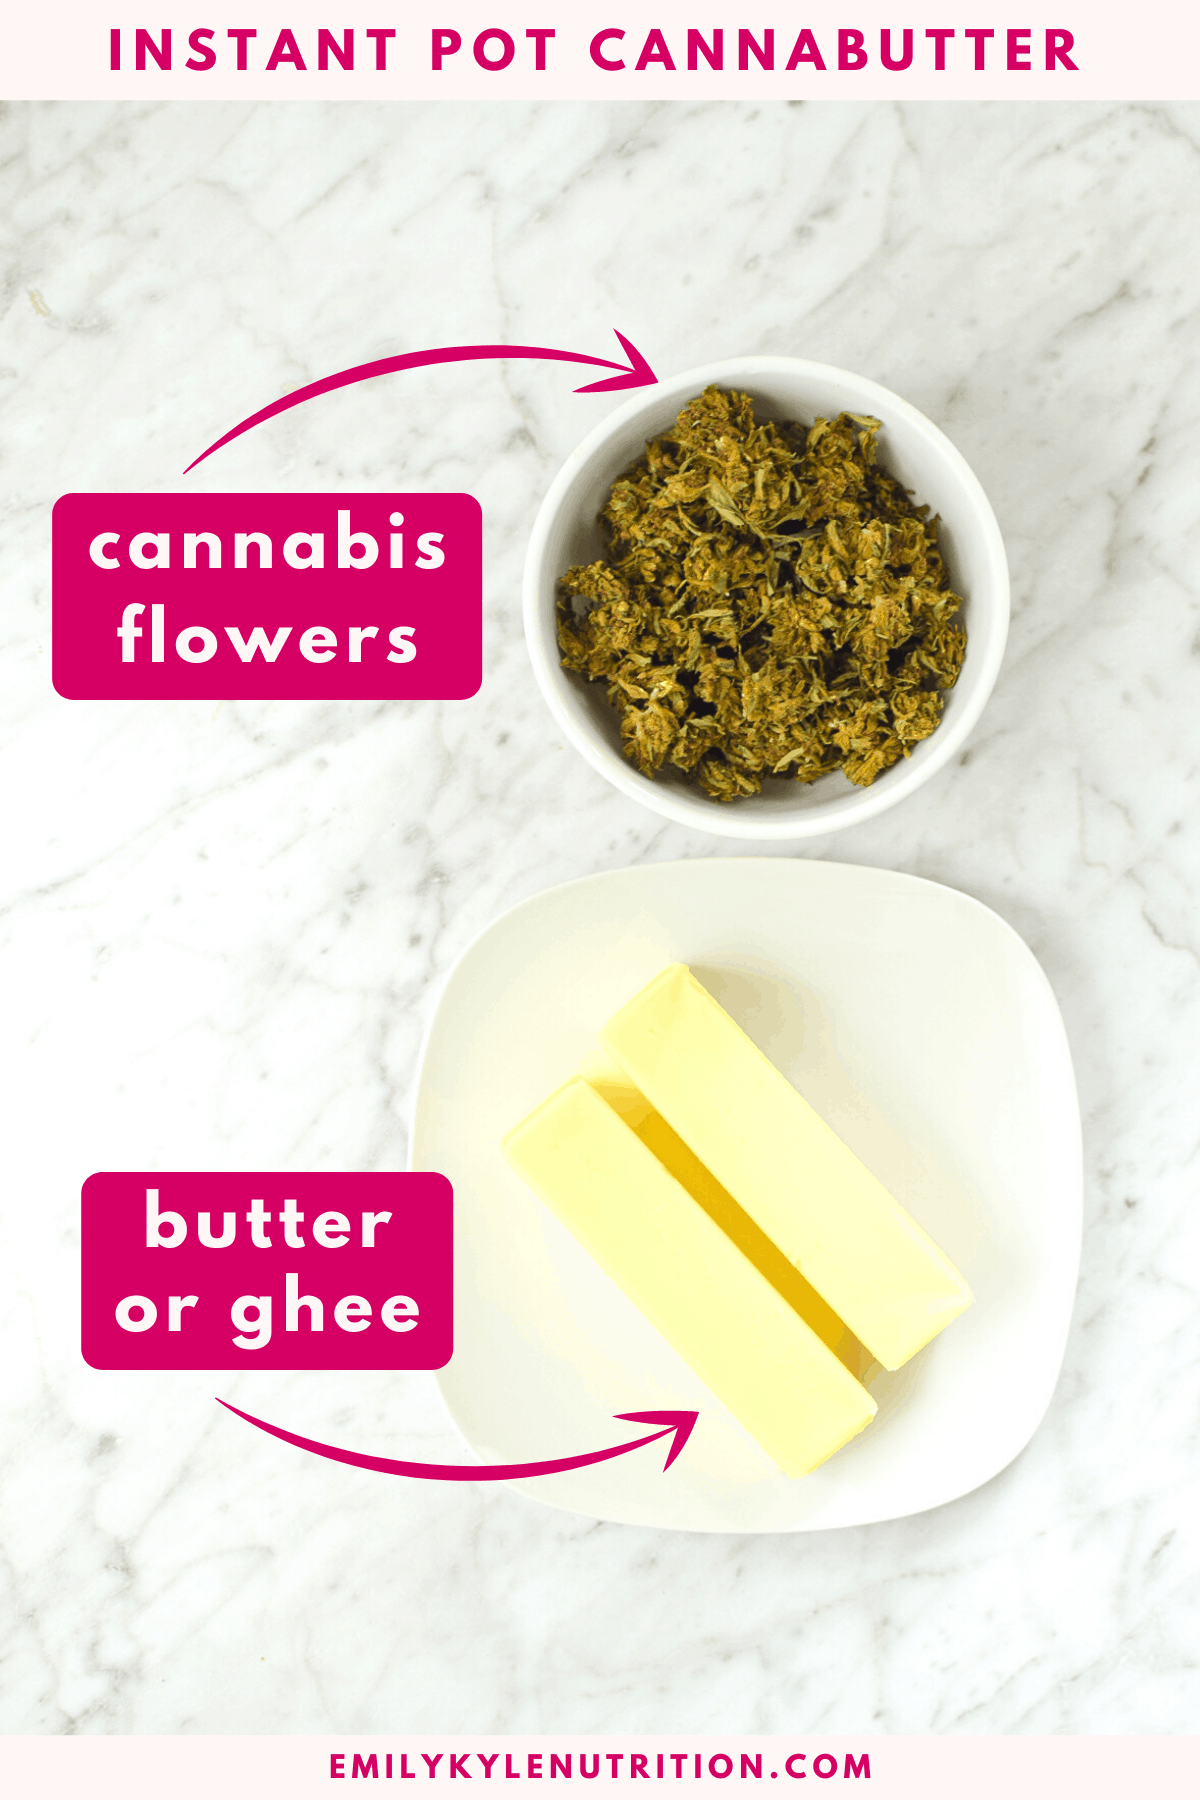 A white counter top with a bowl of cannabis and a plate of butter describing the ingredients used to make cannabutter